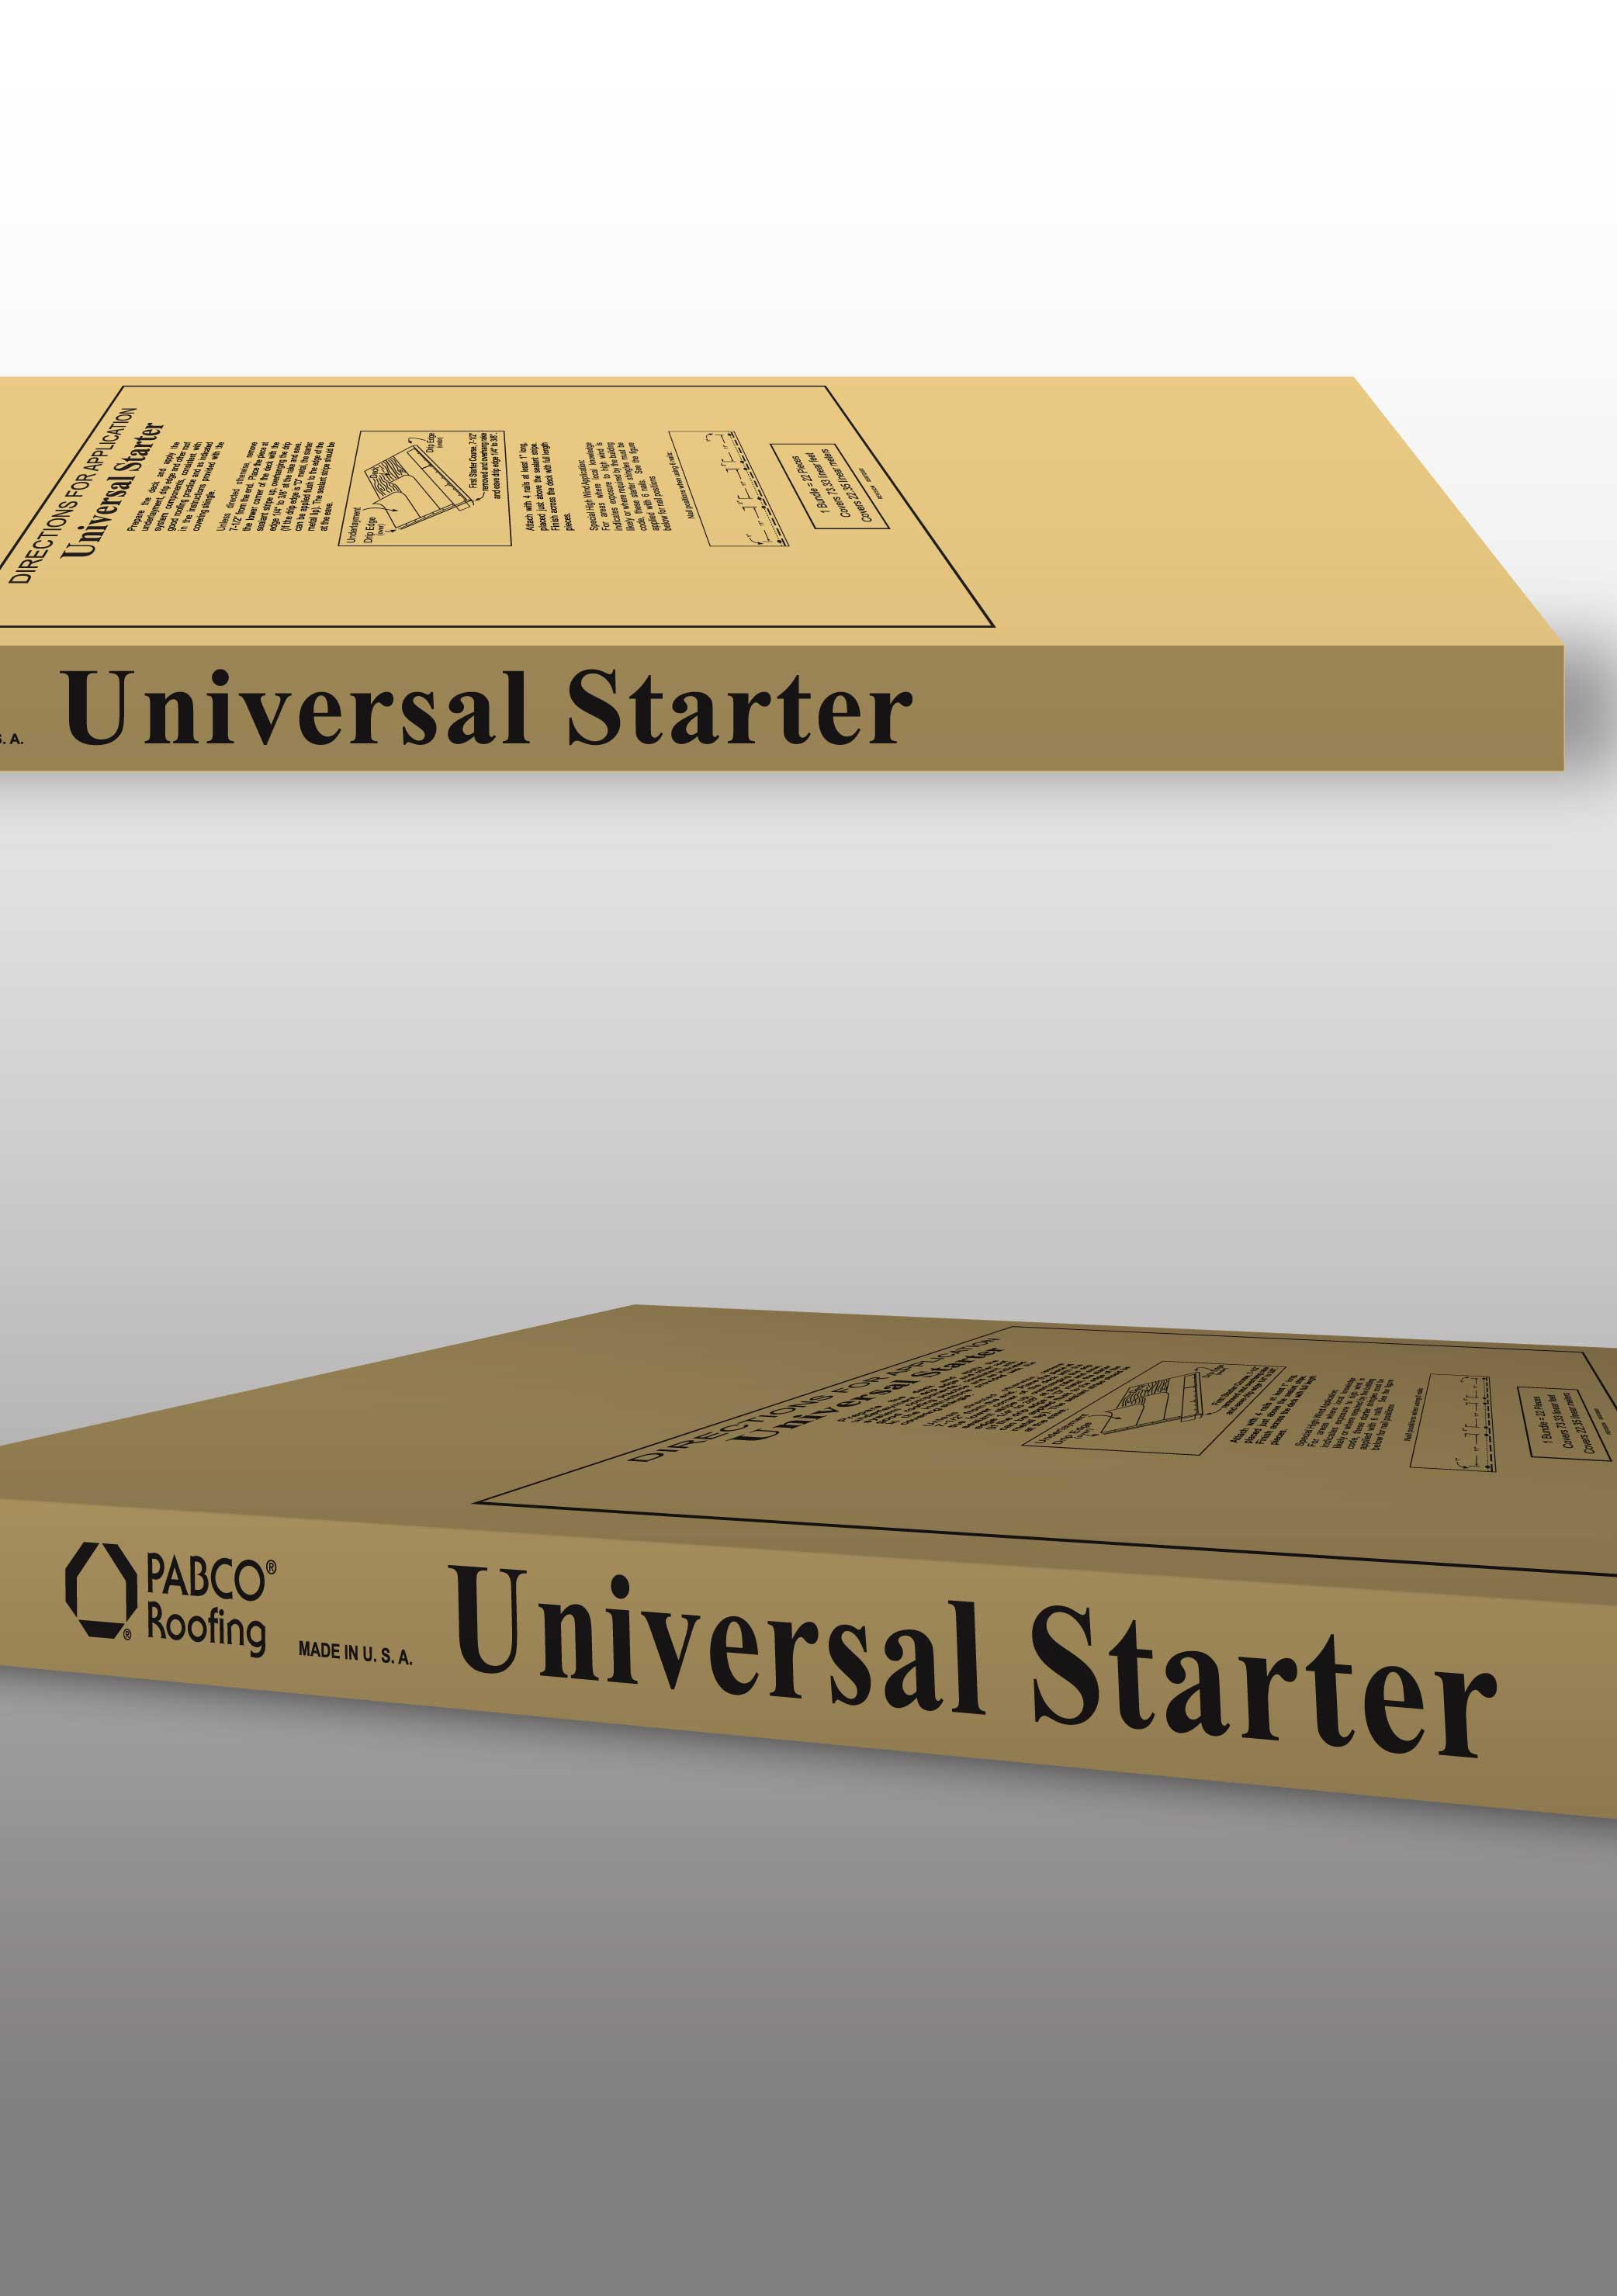 Get Started with PABCO® Roofing Product's New Universal Starter™ Shingles